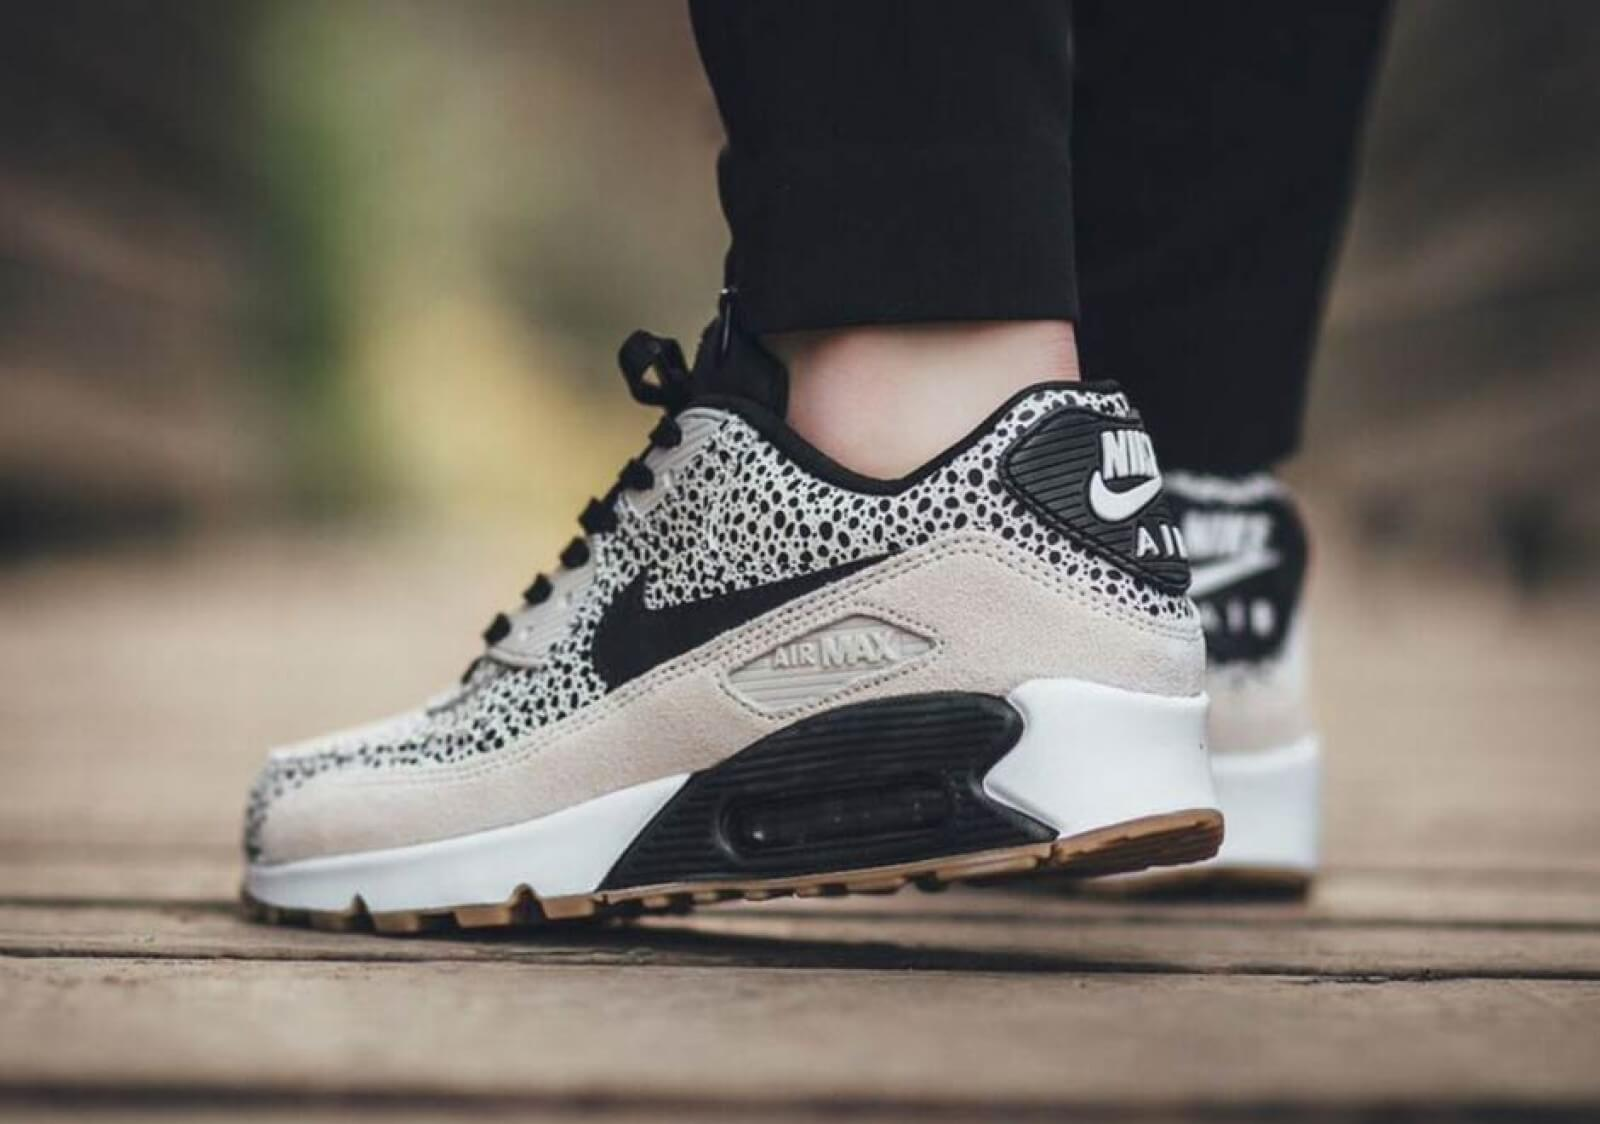 Nike Wmns Air Max 90 PRM WhiteBlack Gum Light Brown 443817 102